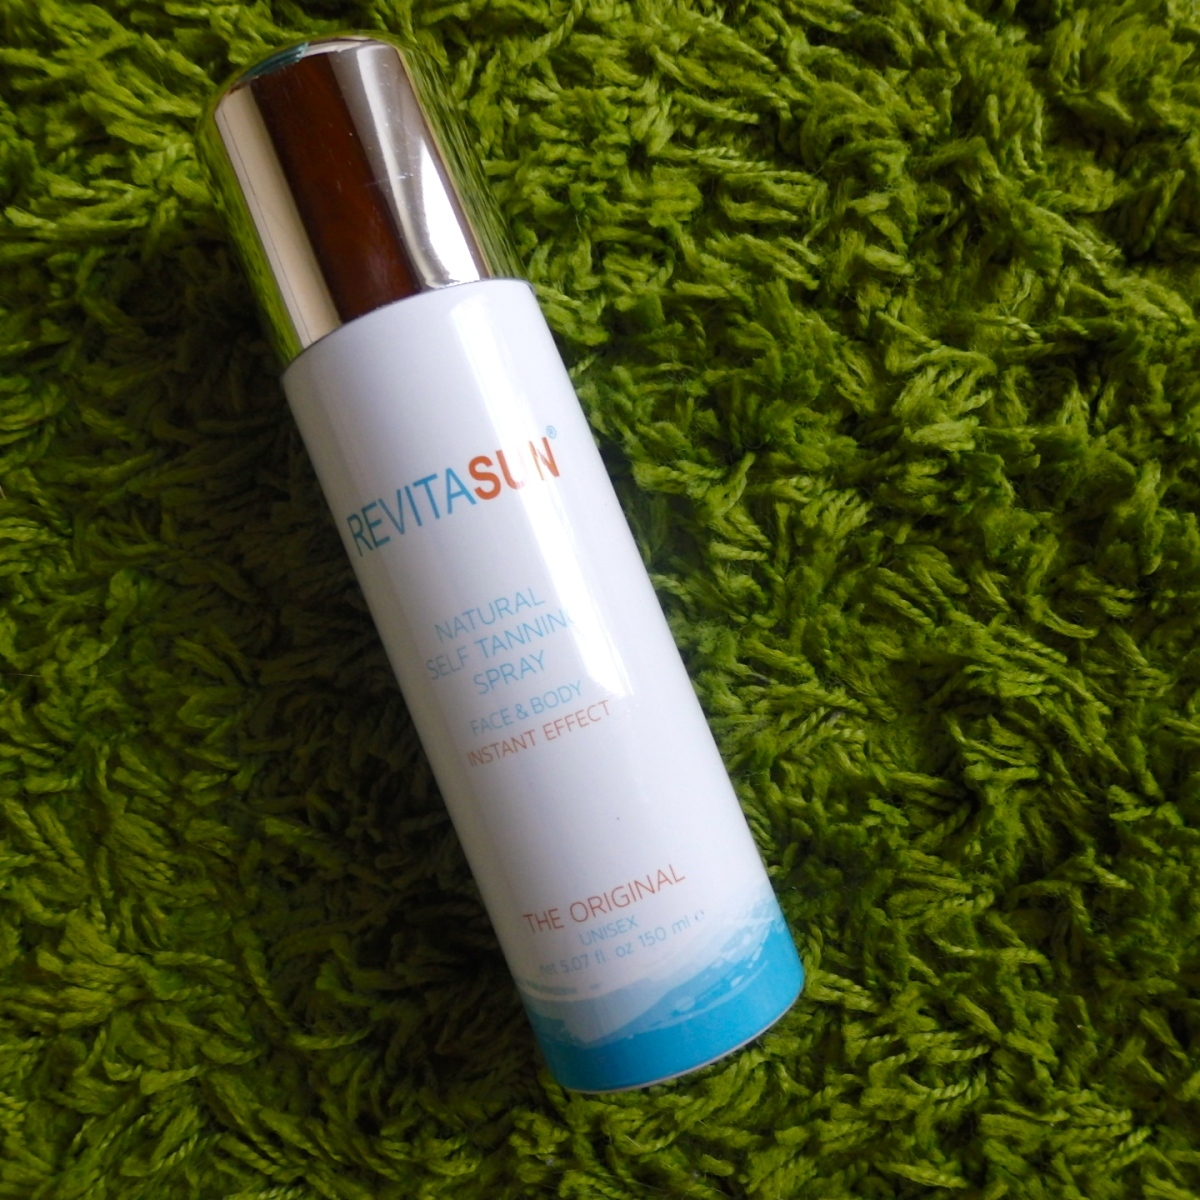 Awake in a world full of sleepers...Revita Sun Self Tanning Spray Review